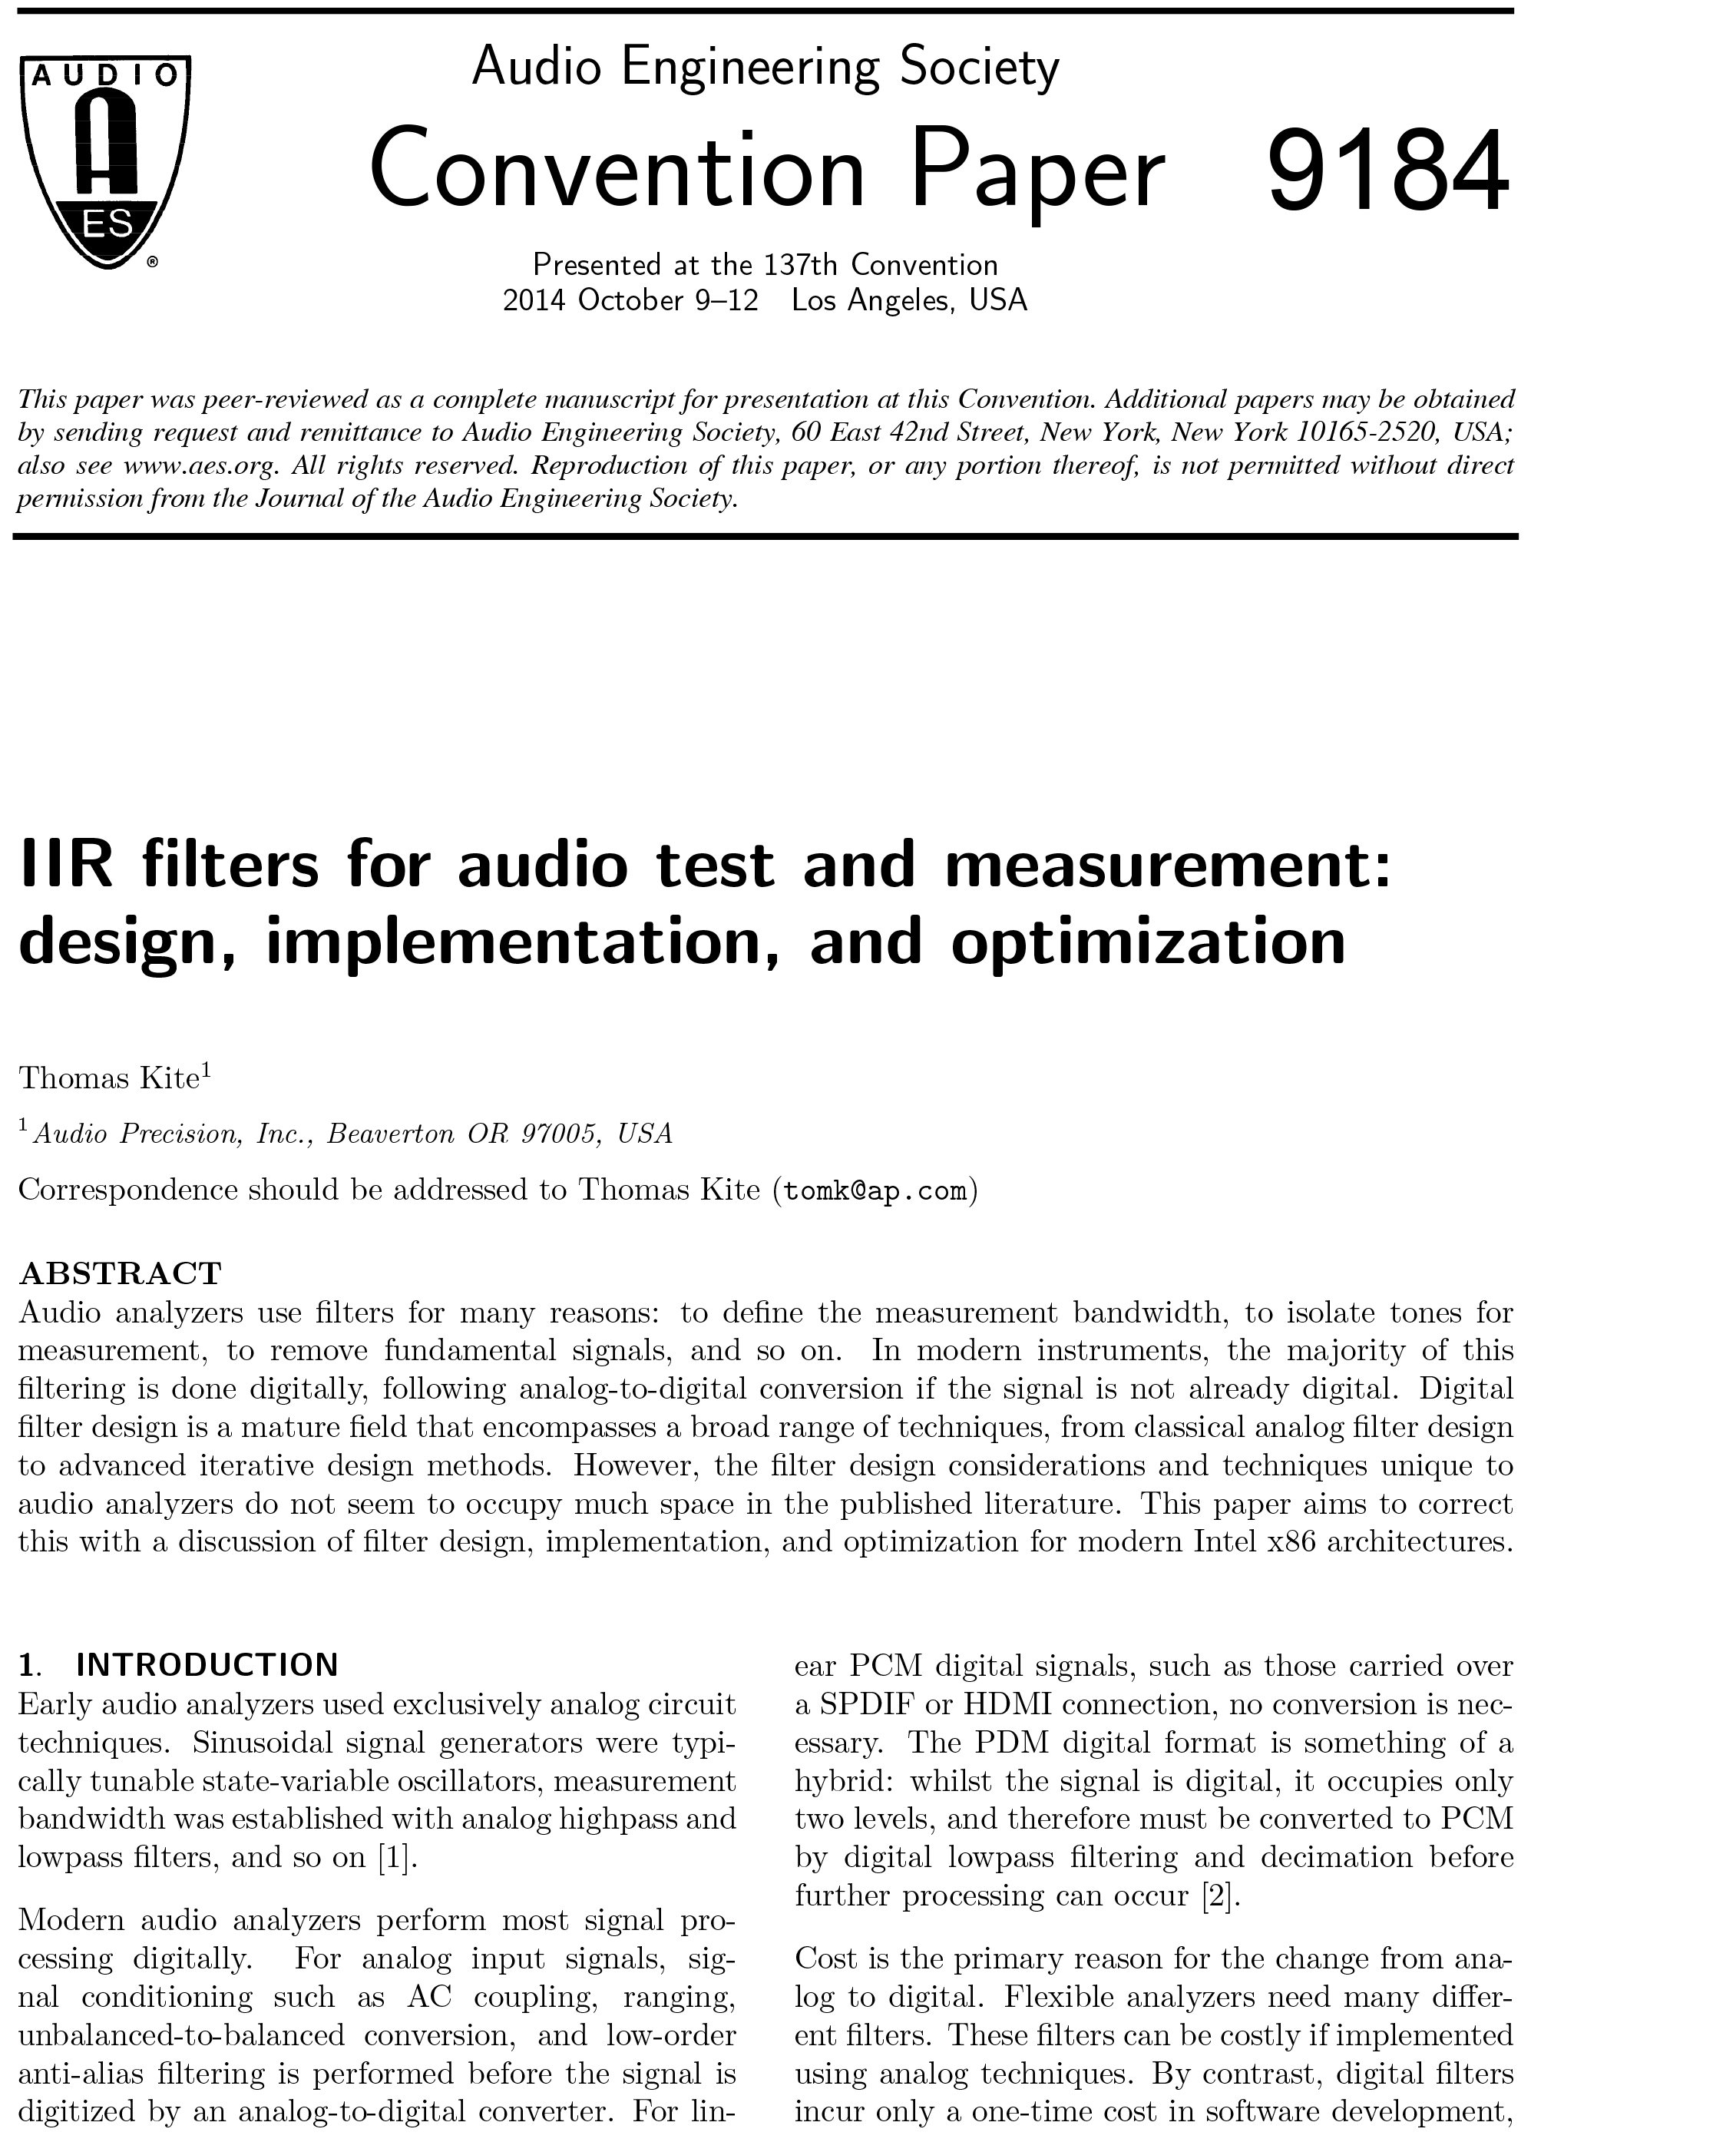 Aes E Library Iir Filters For Audio Test And Measurement Design Frequency Oscillator Variable Circuit Implementation Optimization